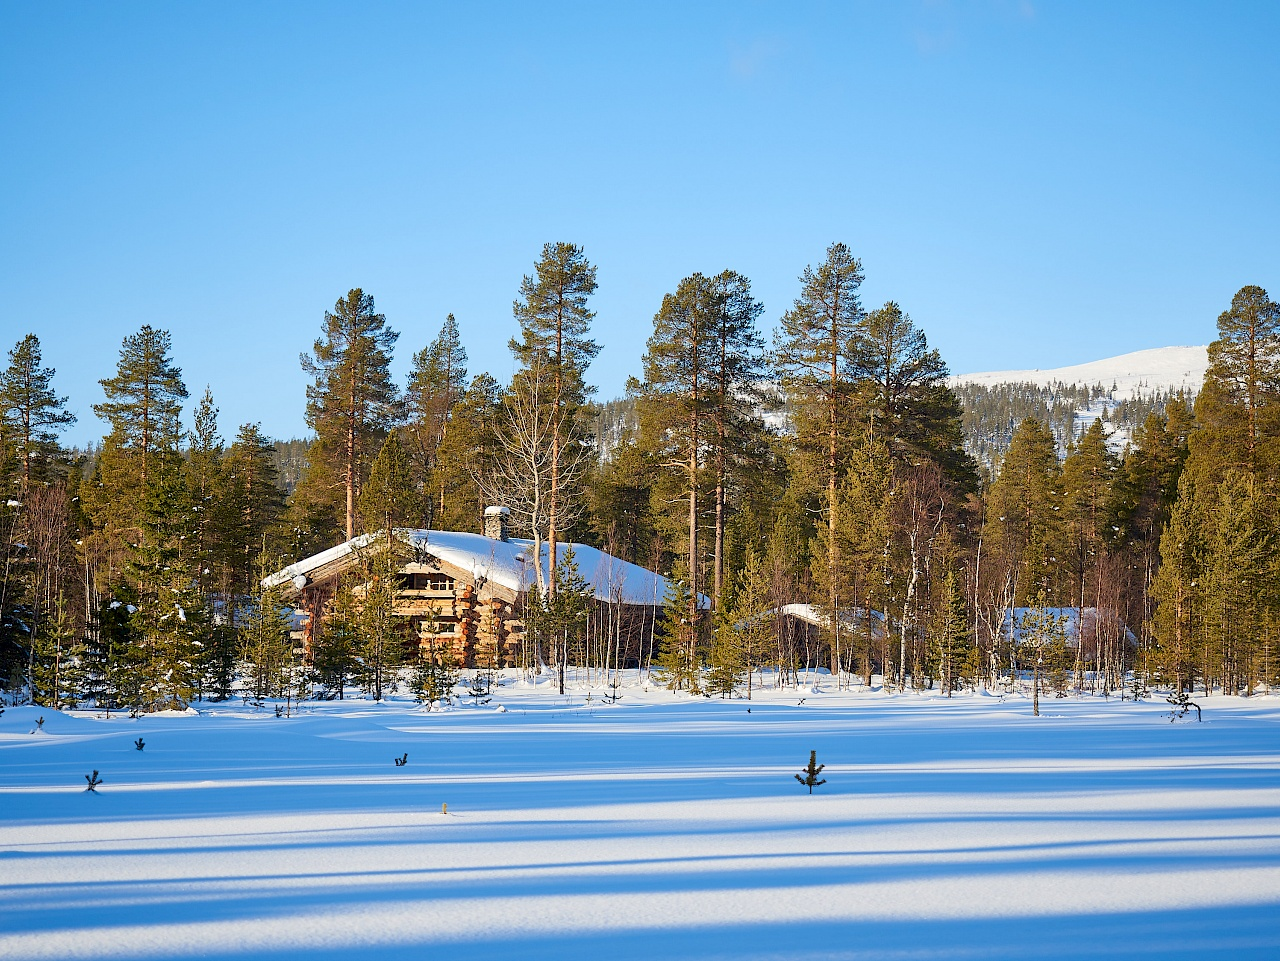 Winterzauber in Lappland